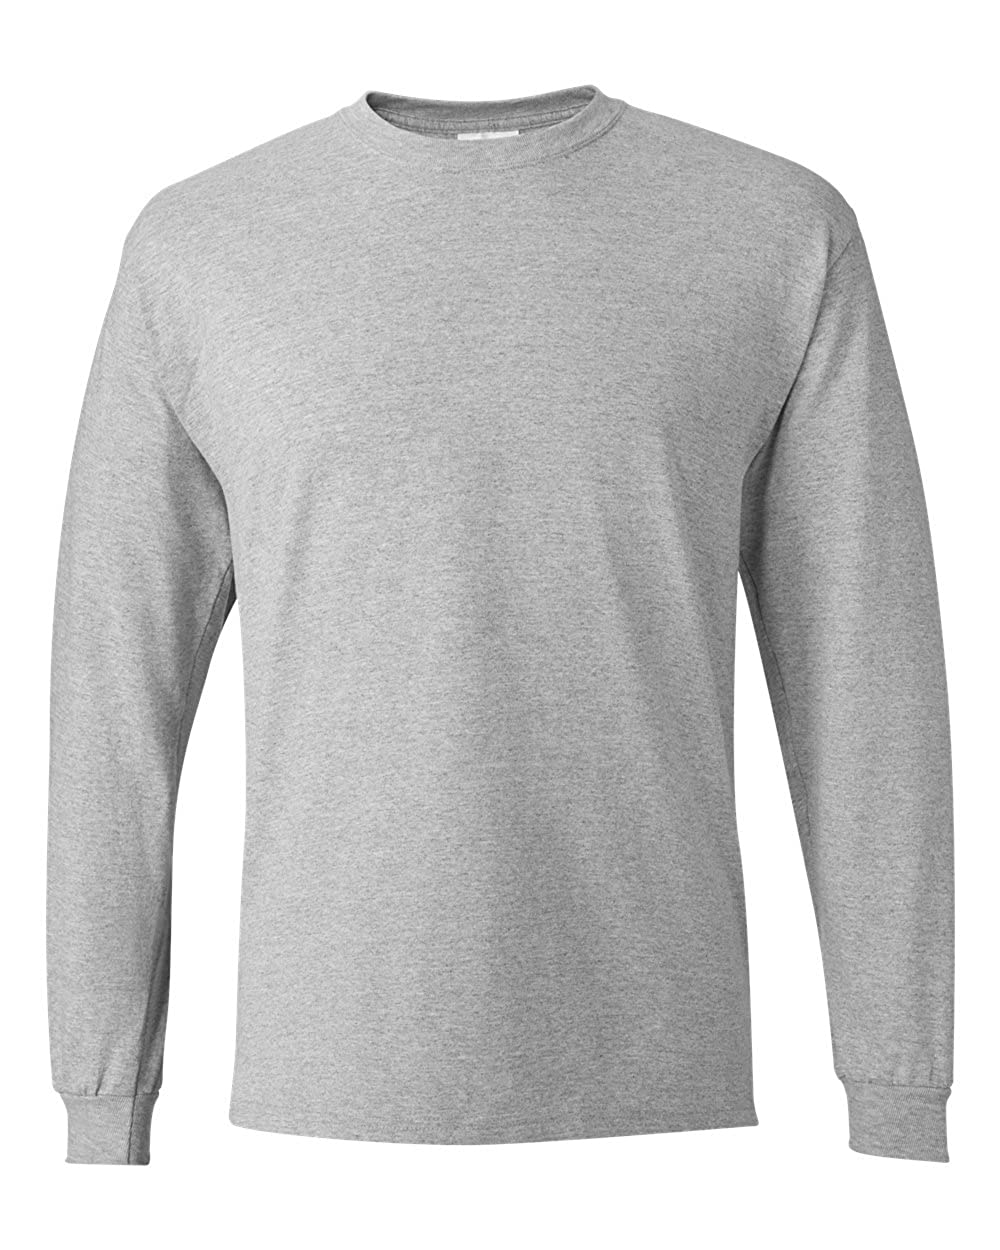 ComfortSoft Cotton Long-Sleeve T-Shirt Hanes 5.2 oz